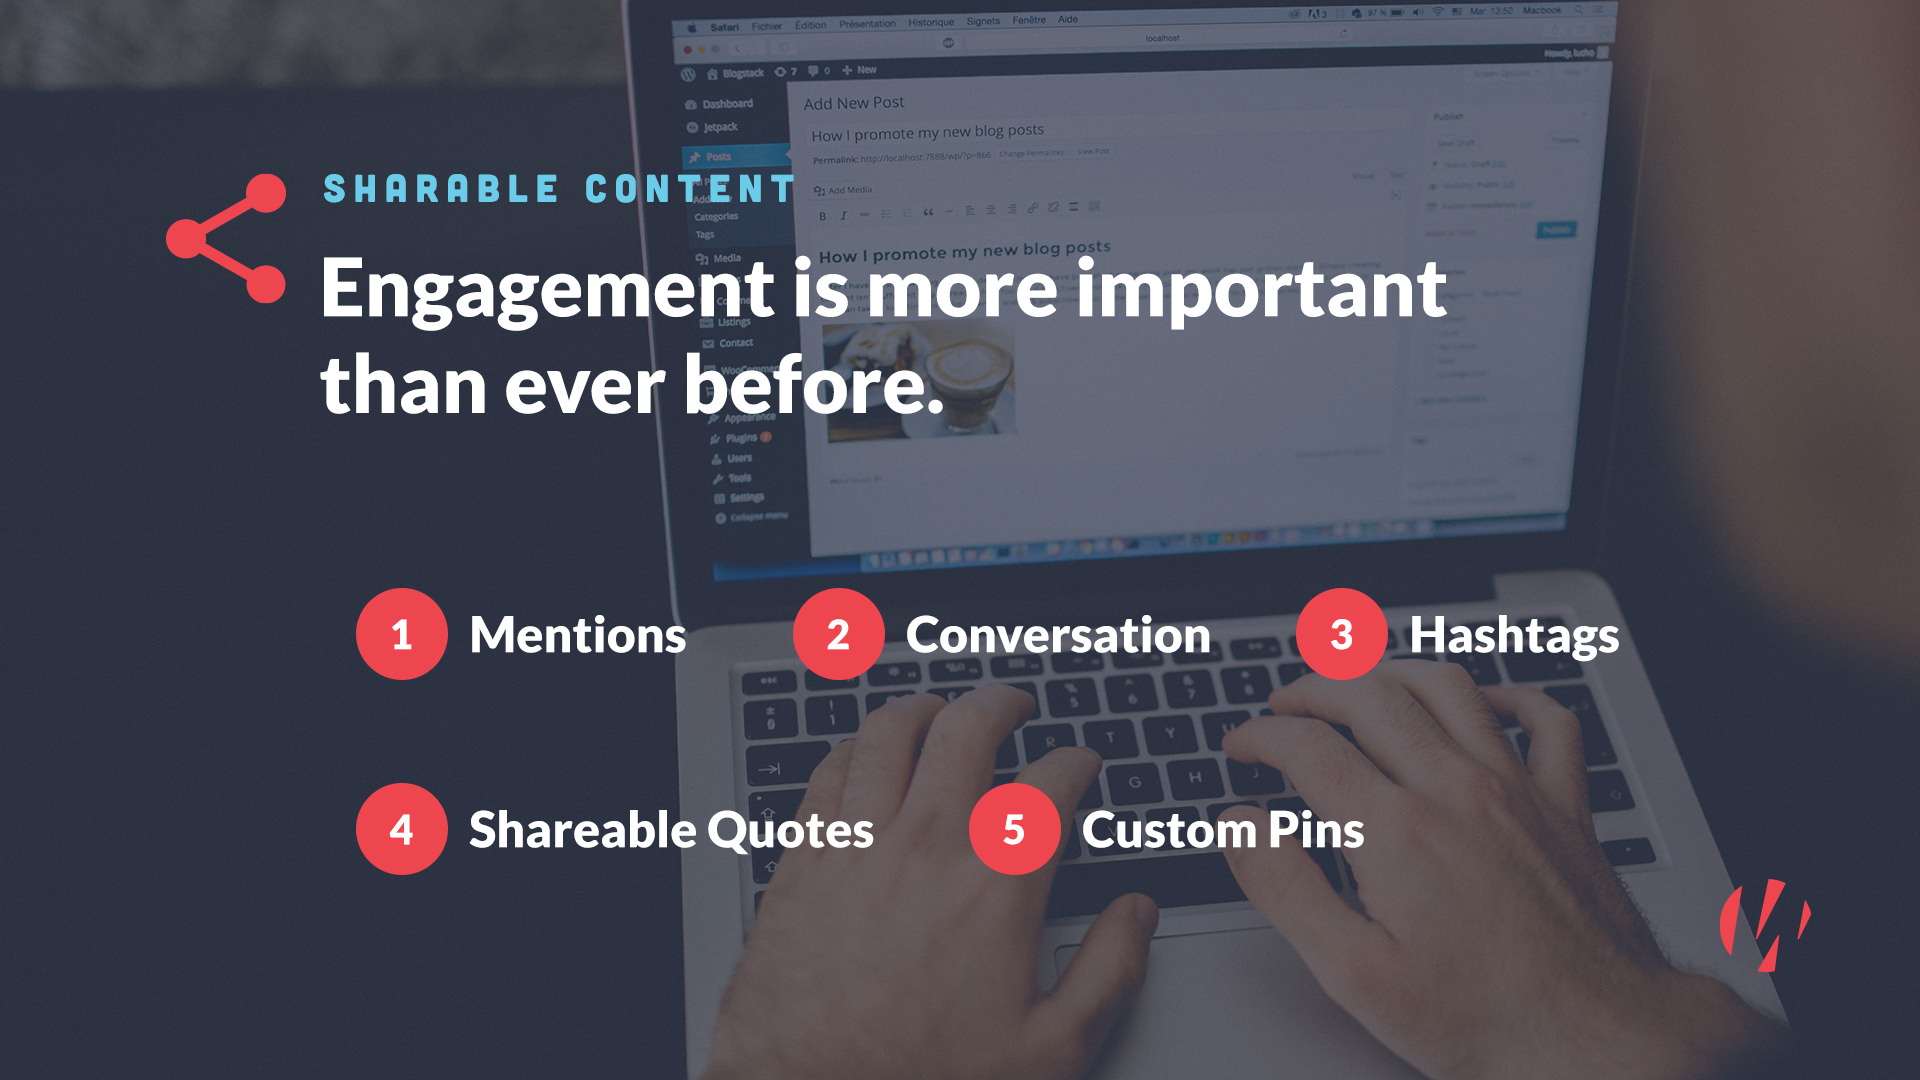 sharable content tips engagement